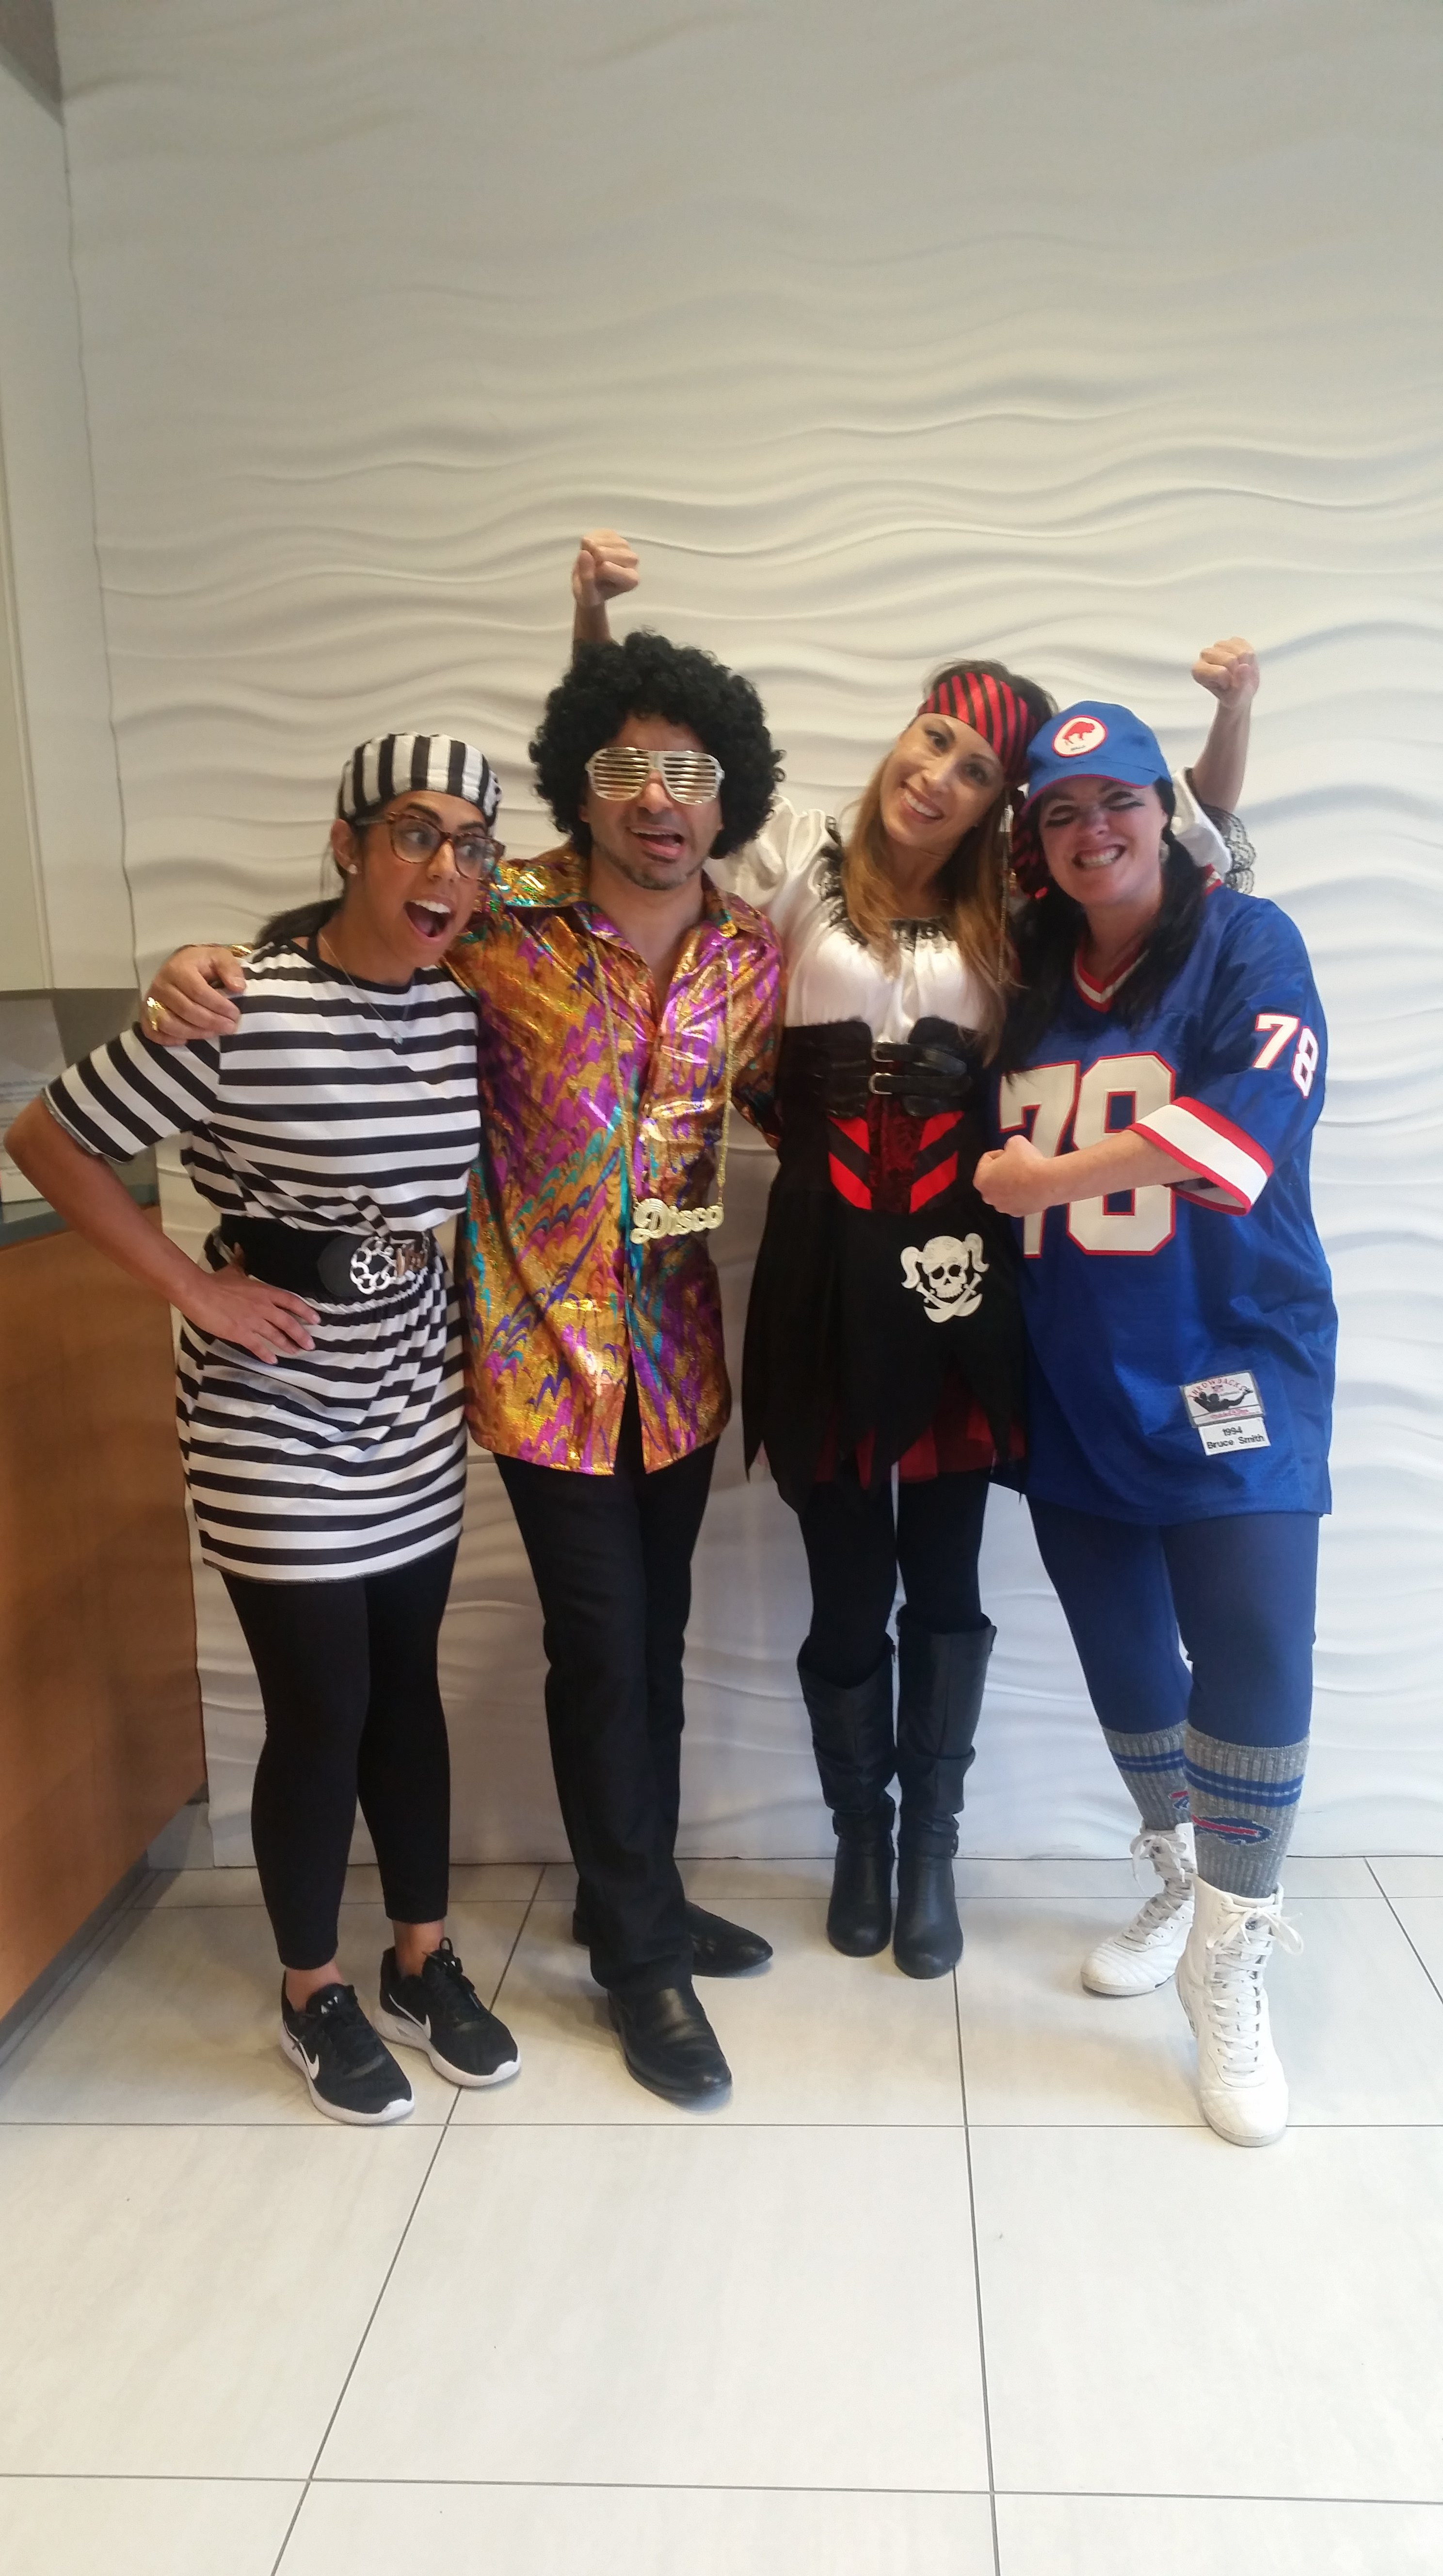 Clayton Heights Family Dental centre goofing around for Halloween